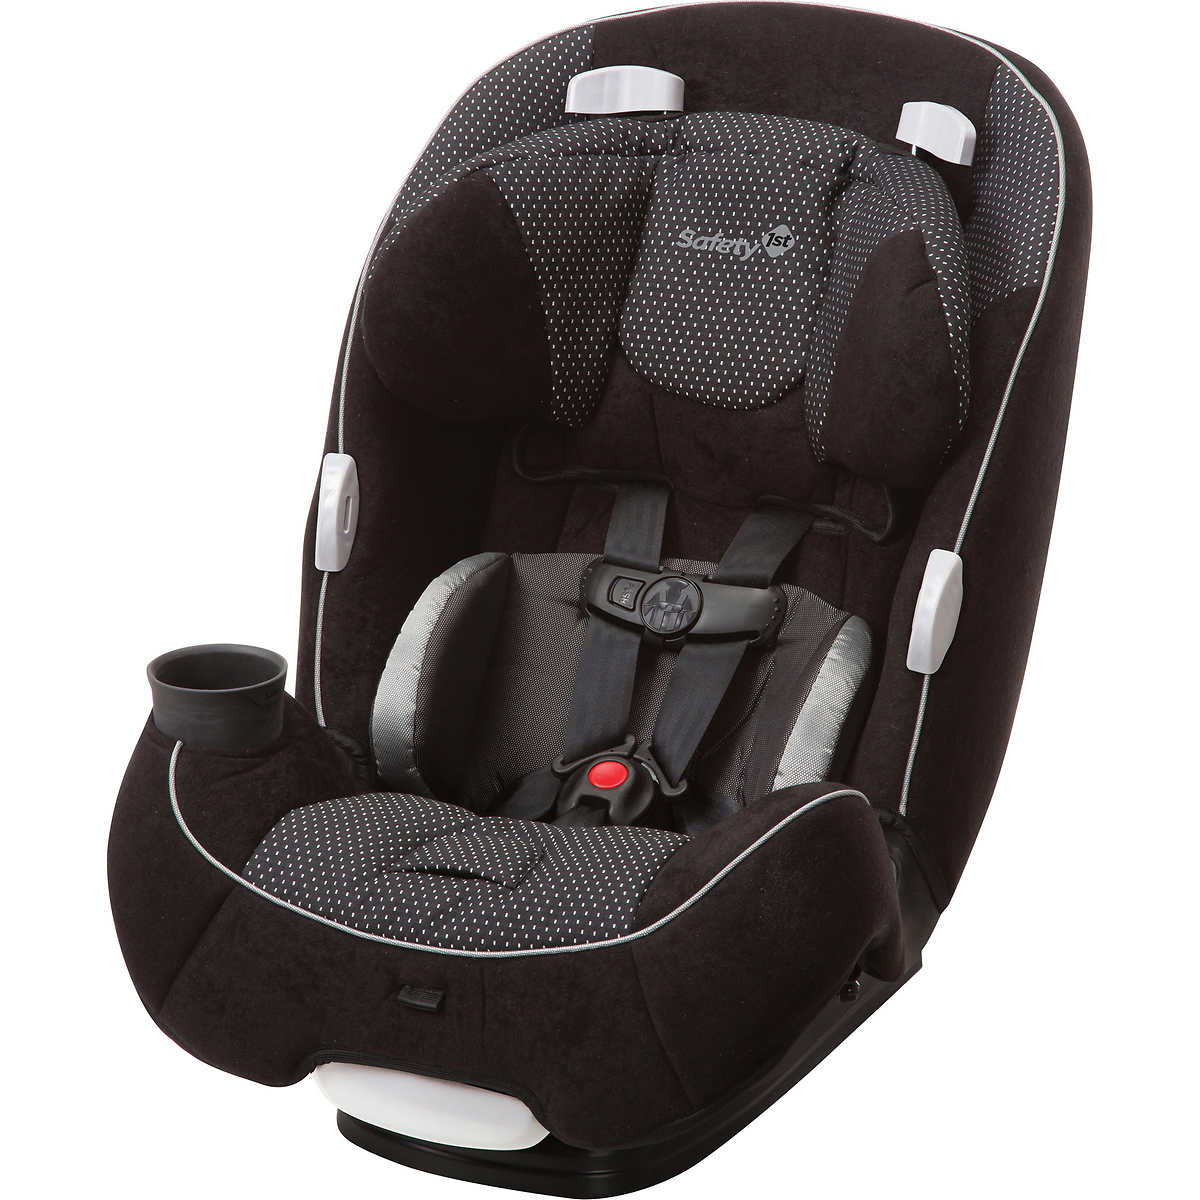 Safety 1st Multifit 3 In 1 Car Seat Black